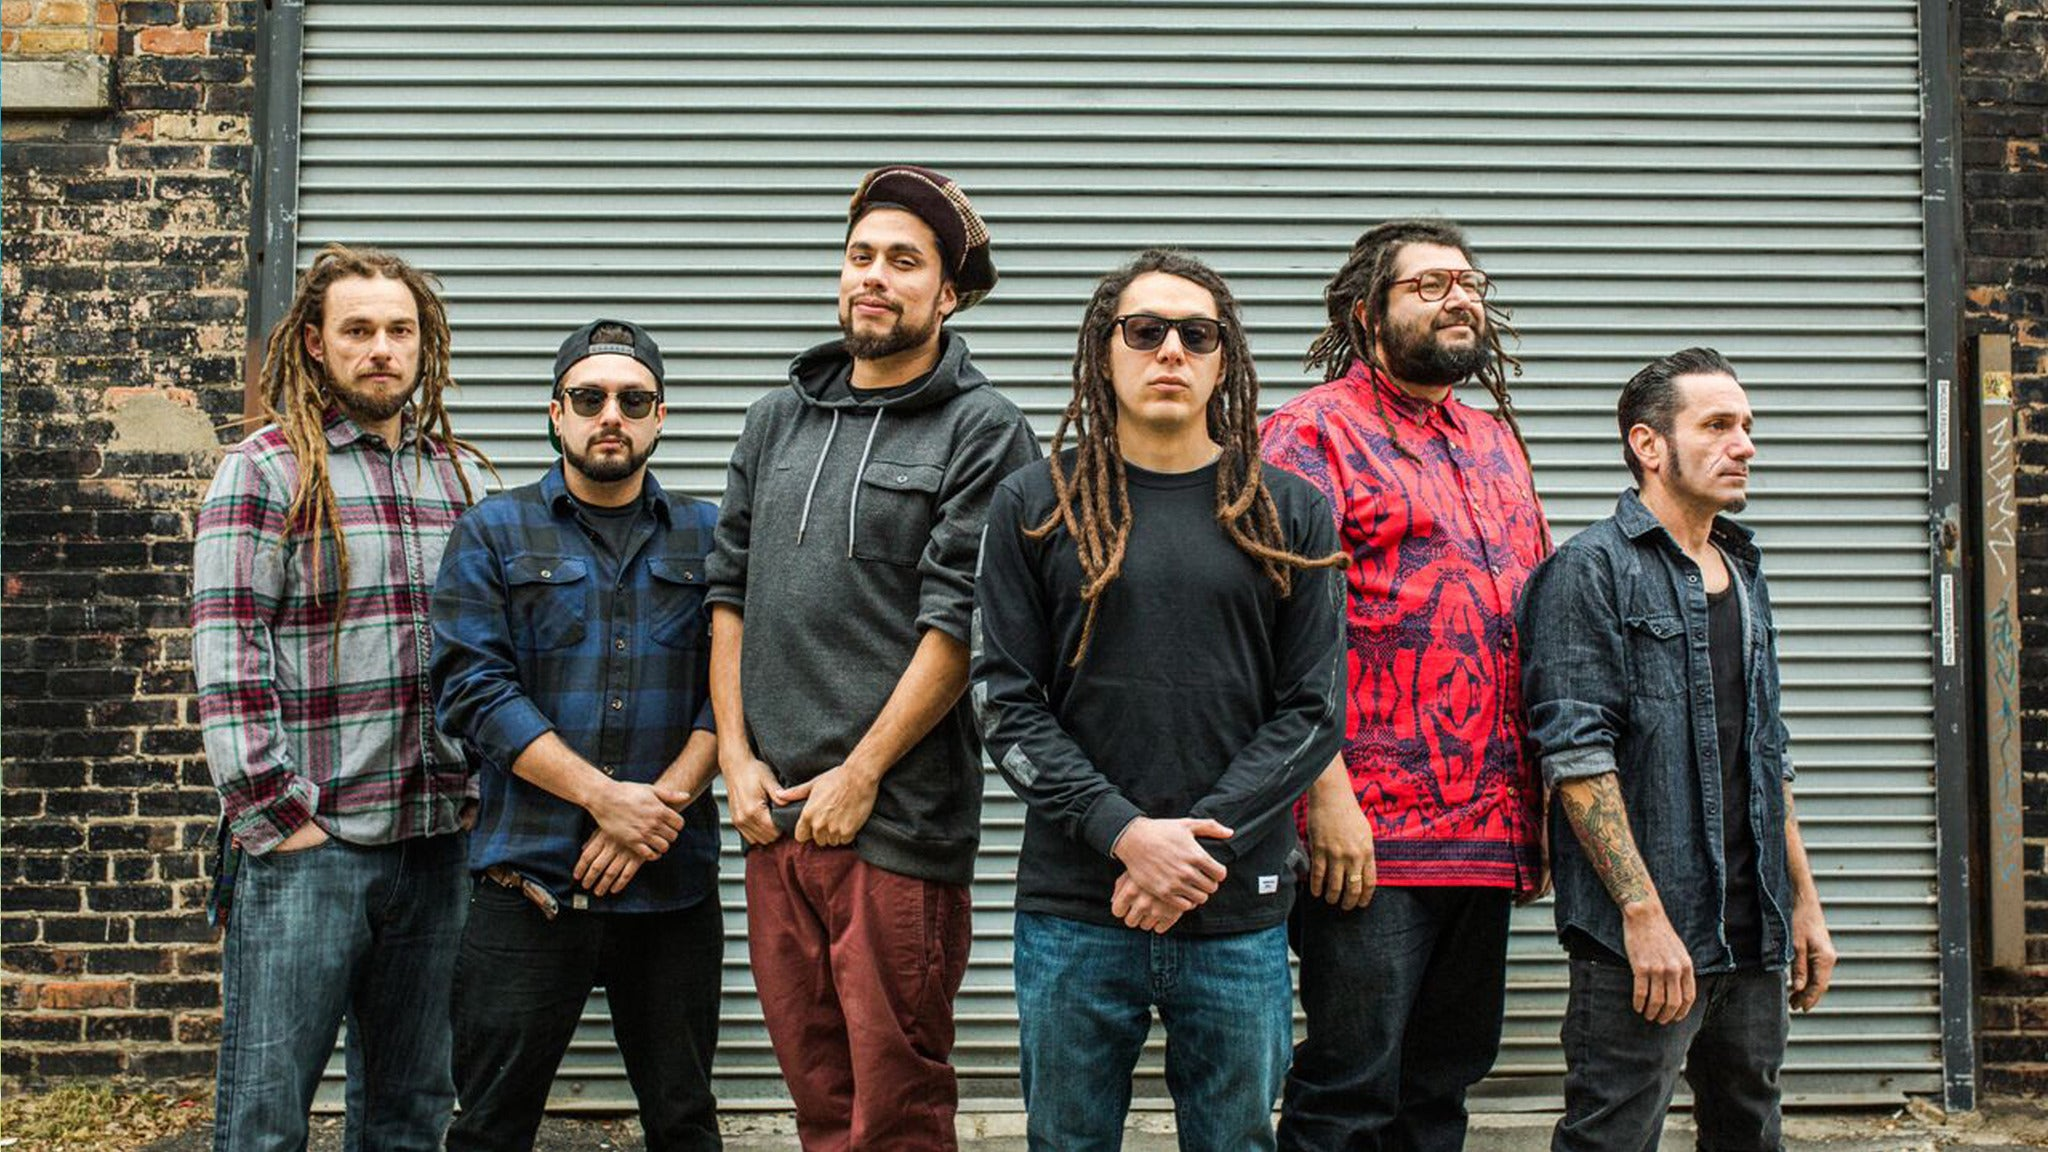 SORRY, THIS EVENT IS NO LONGER ACTIVE<br>Tribal Seeds at Mountain Winery - Saratoga, CA 95071